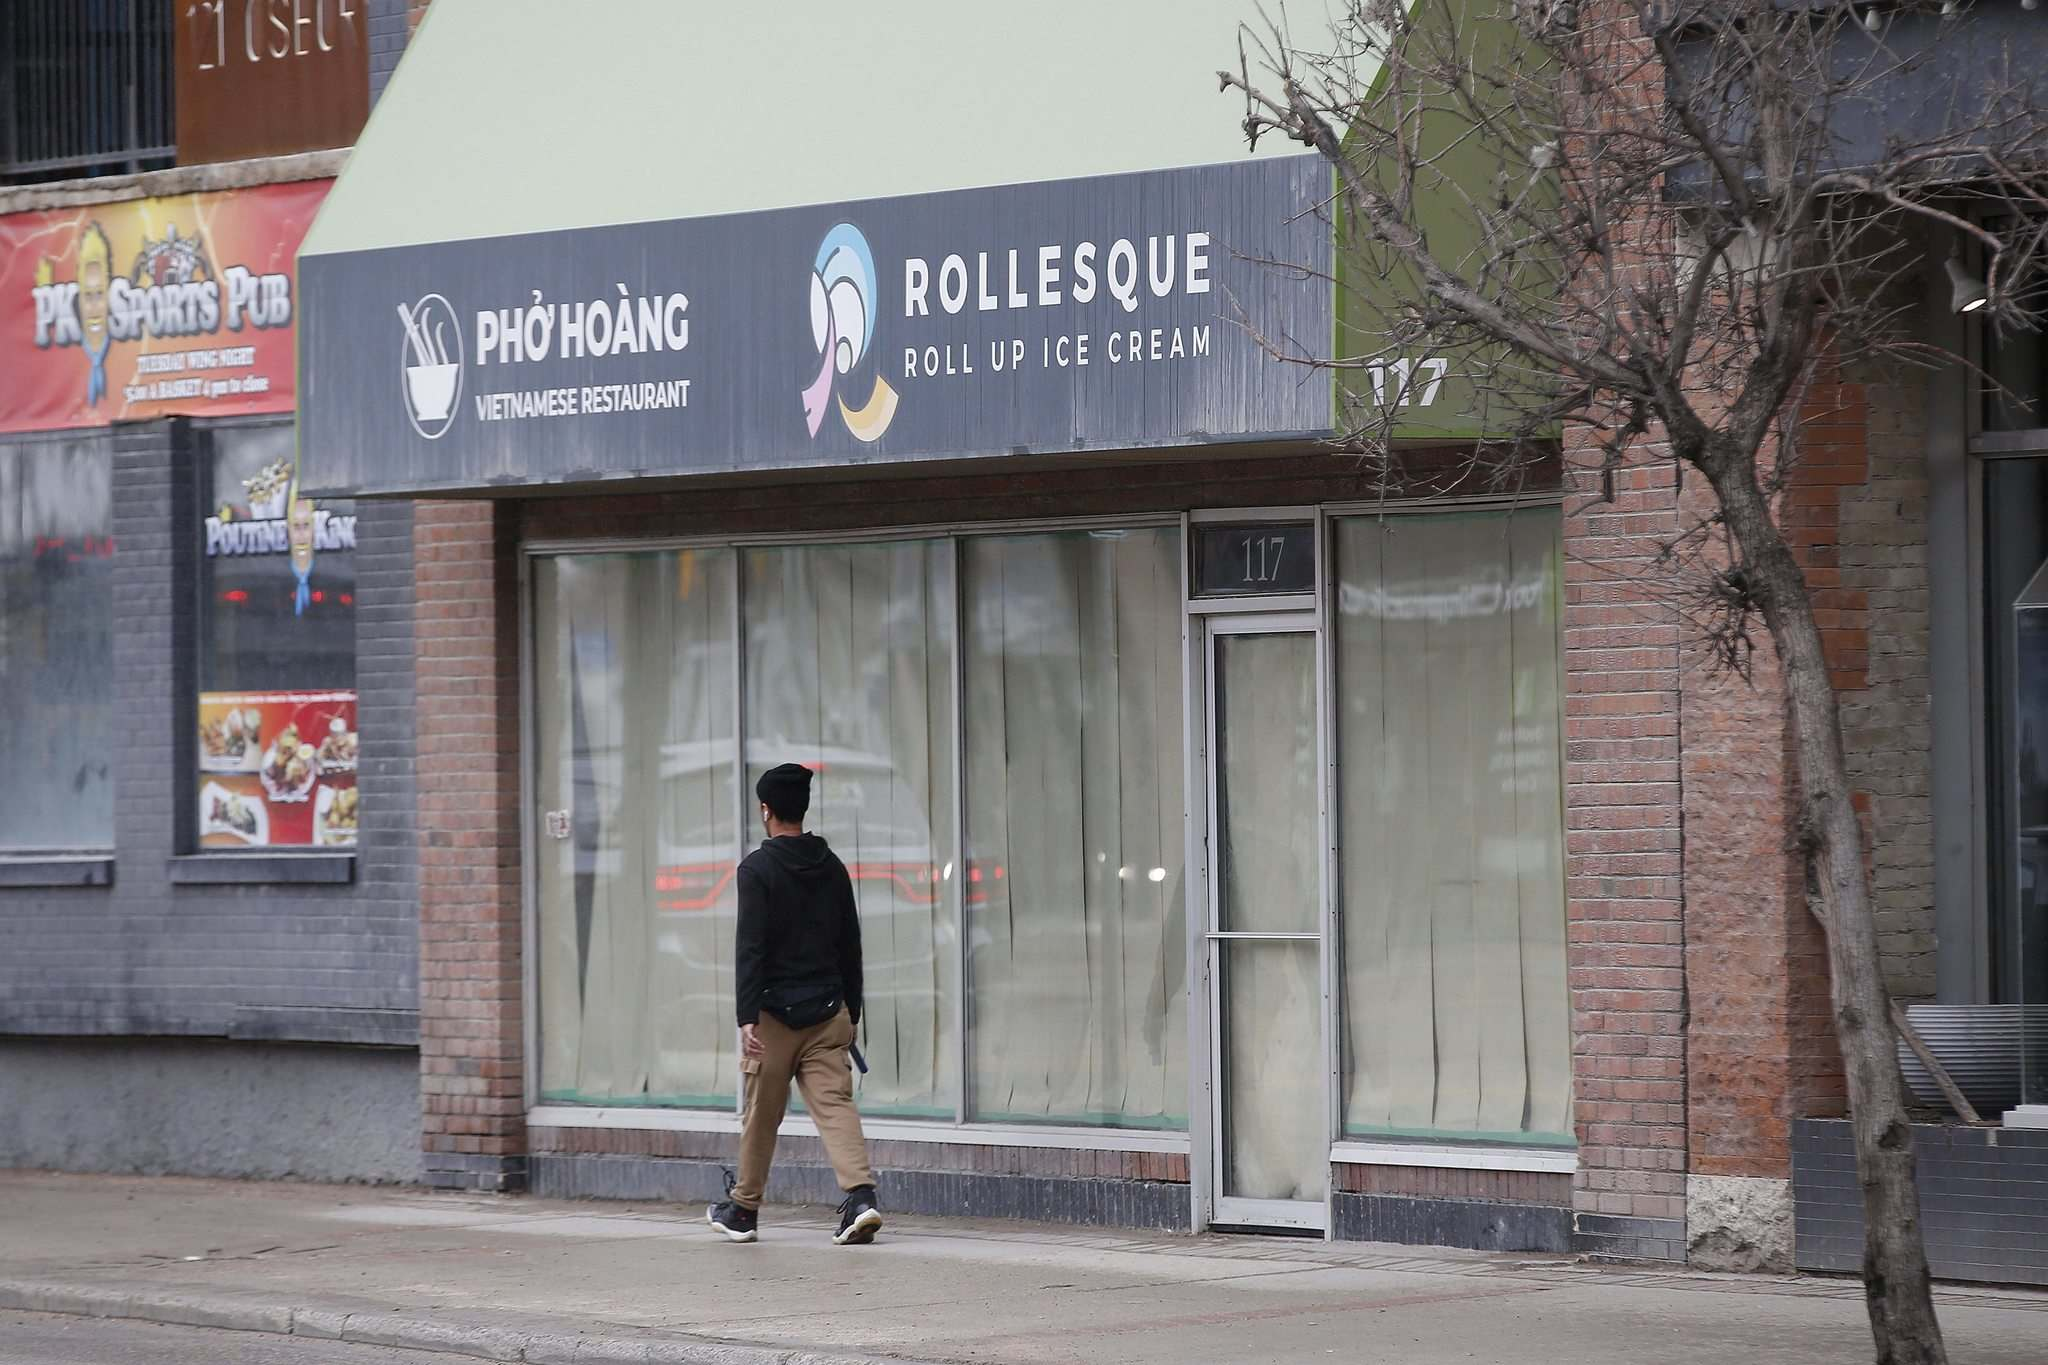 Renovations are complete on the new Pho Hoang and Rollesque location, owner Tom Hoang said.